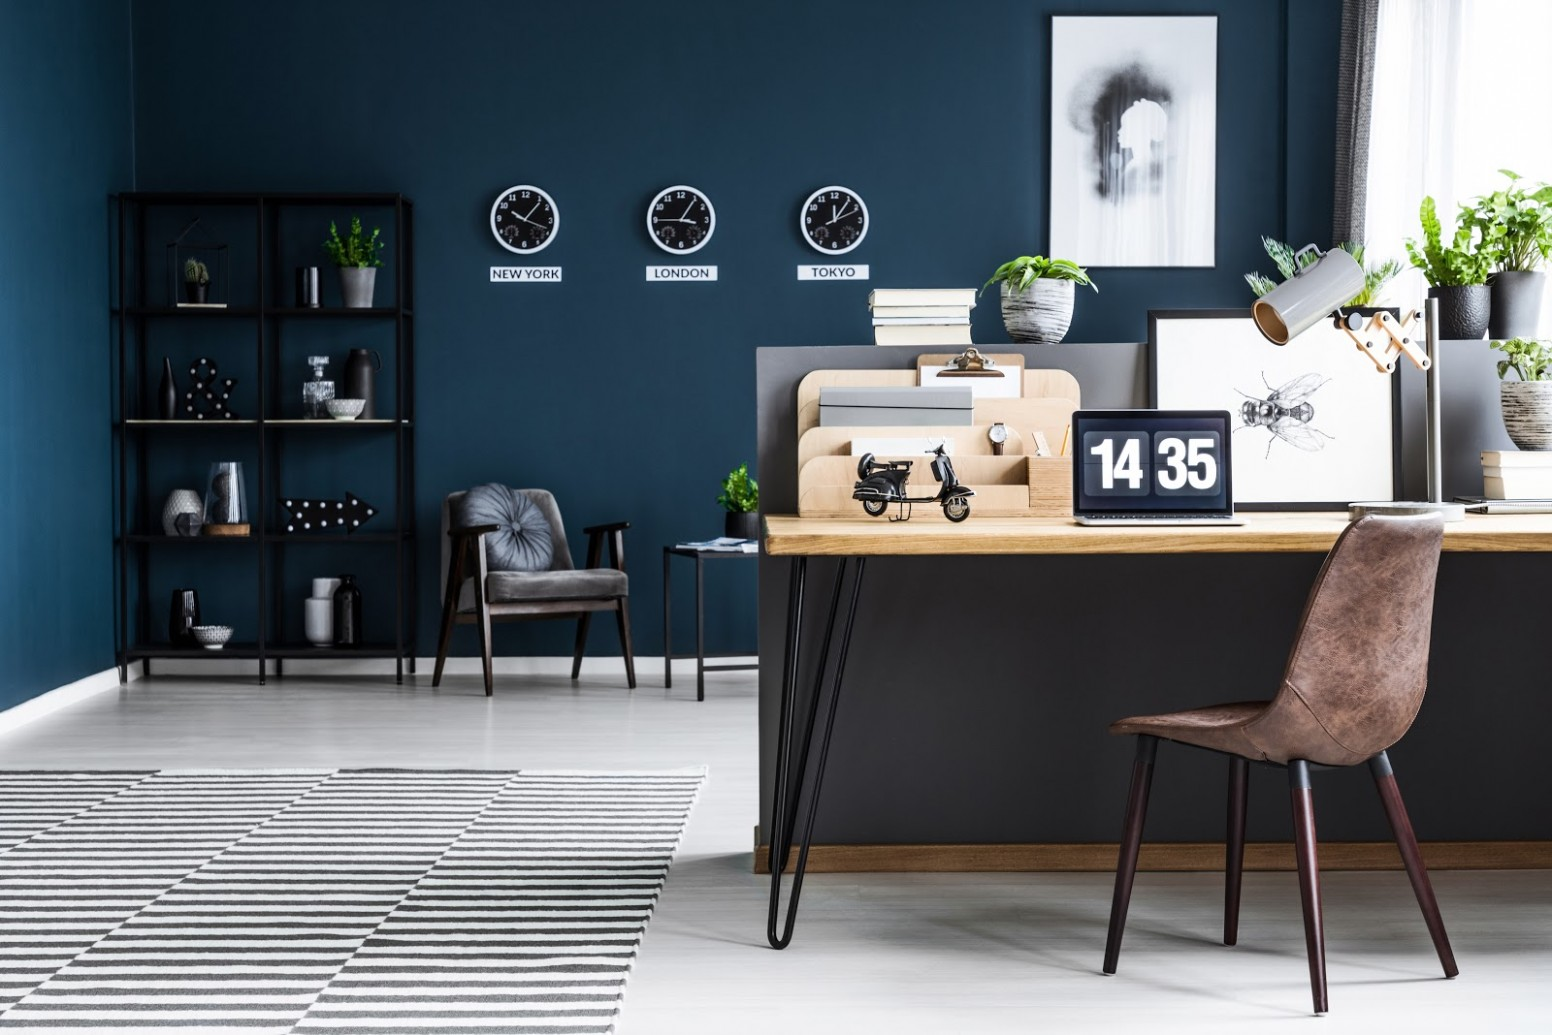 Home Office Paint Color Ideas & Inspiration - Ricciardi Brothers - Home Office Ideas Colors